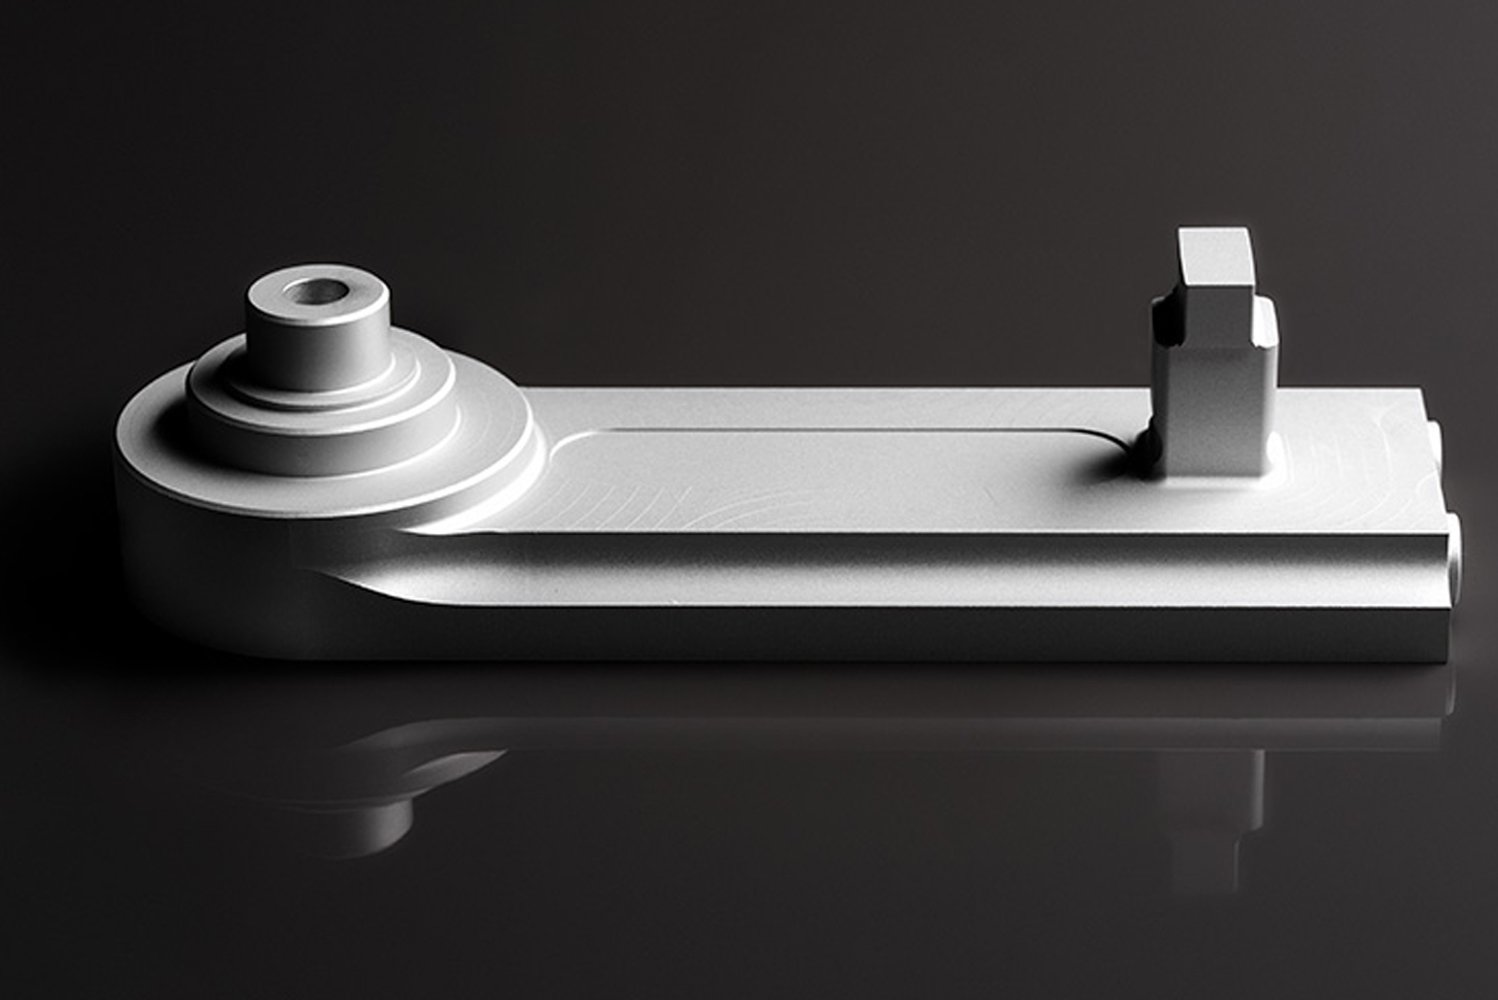 The system was designed with a simplified trolley and wheel, along with a new finishing process that works with the company's unique two-part track.